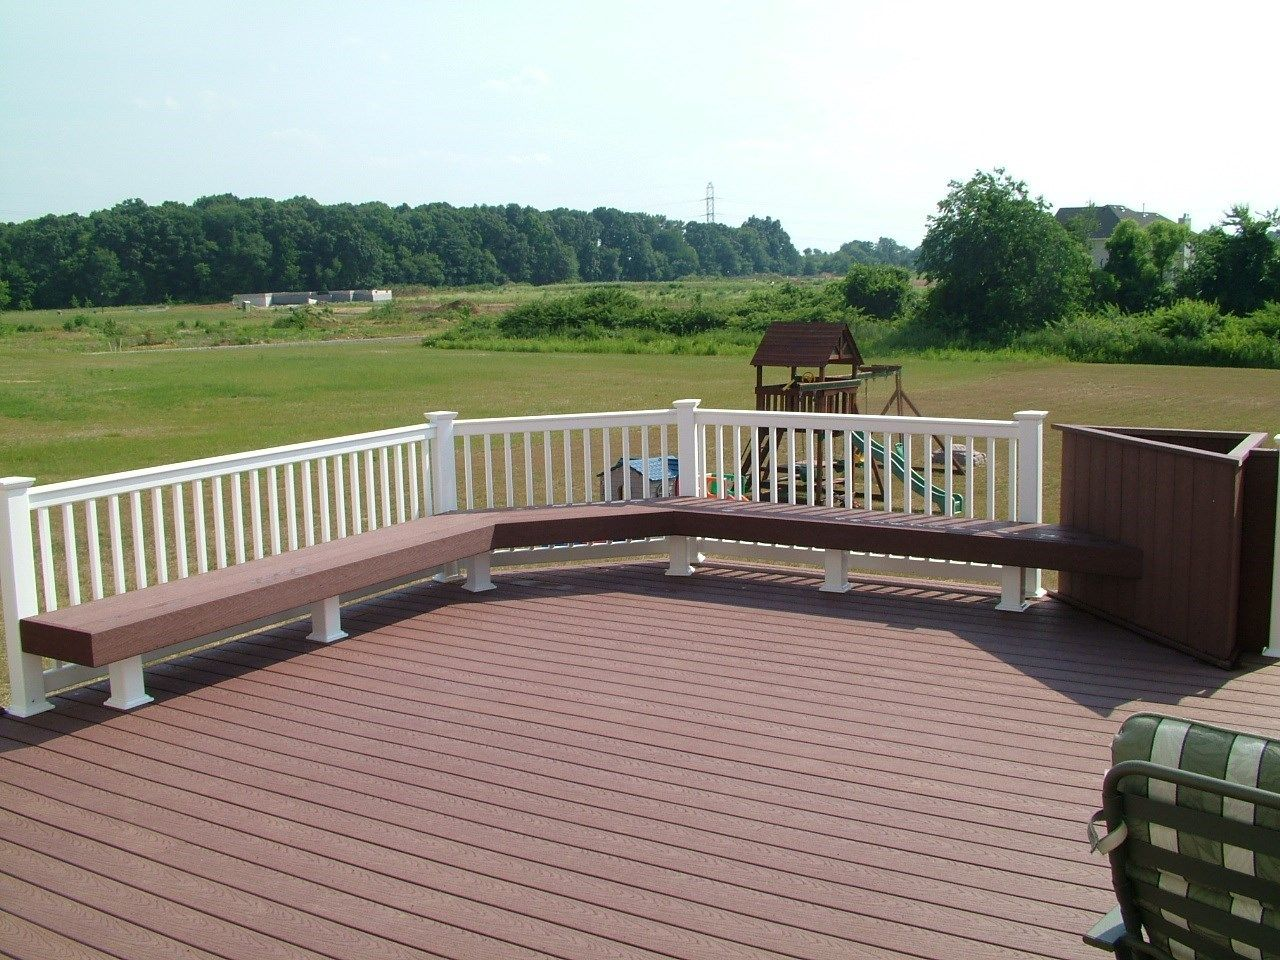 Custom Gazebo deck in Millstone NJ - Picture 3399